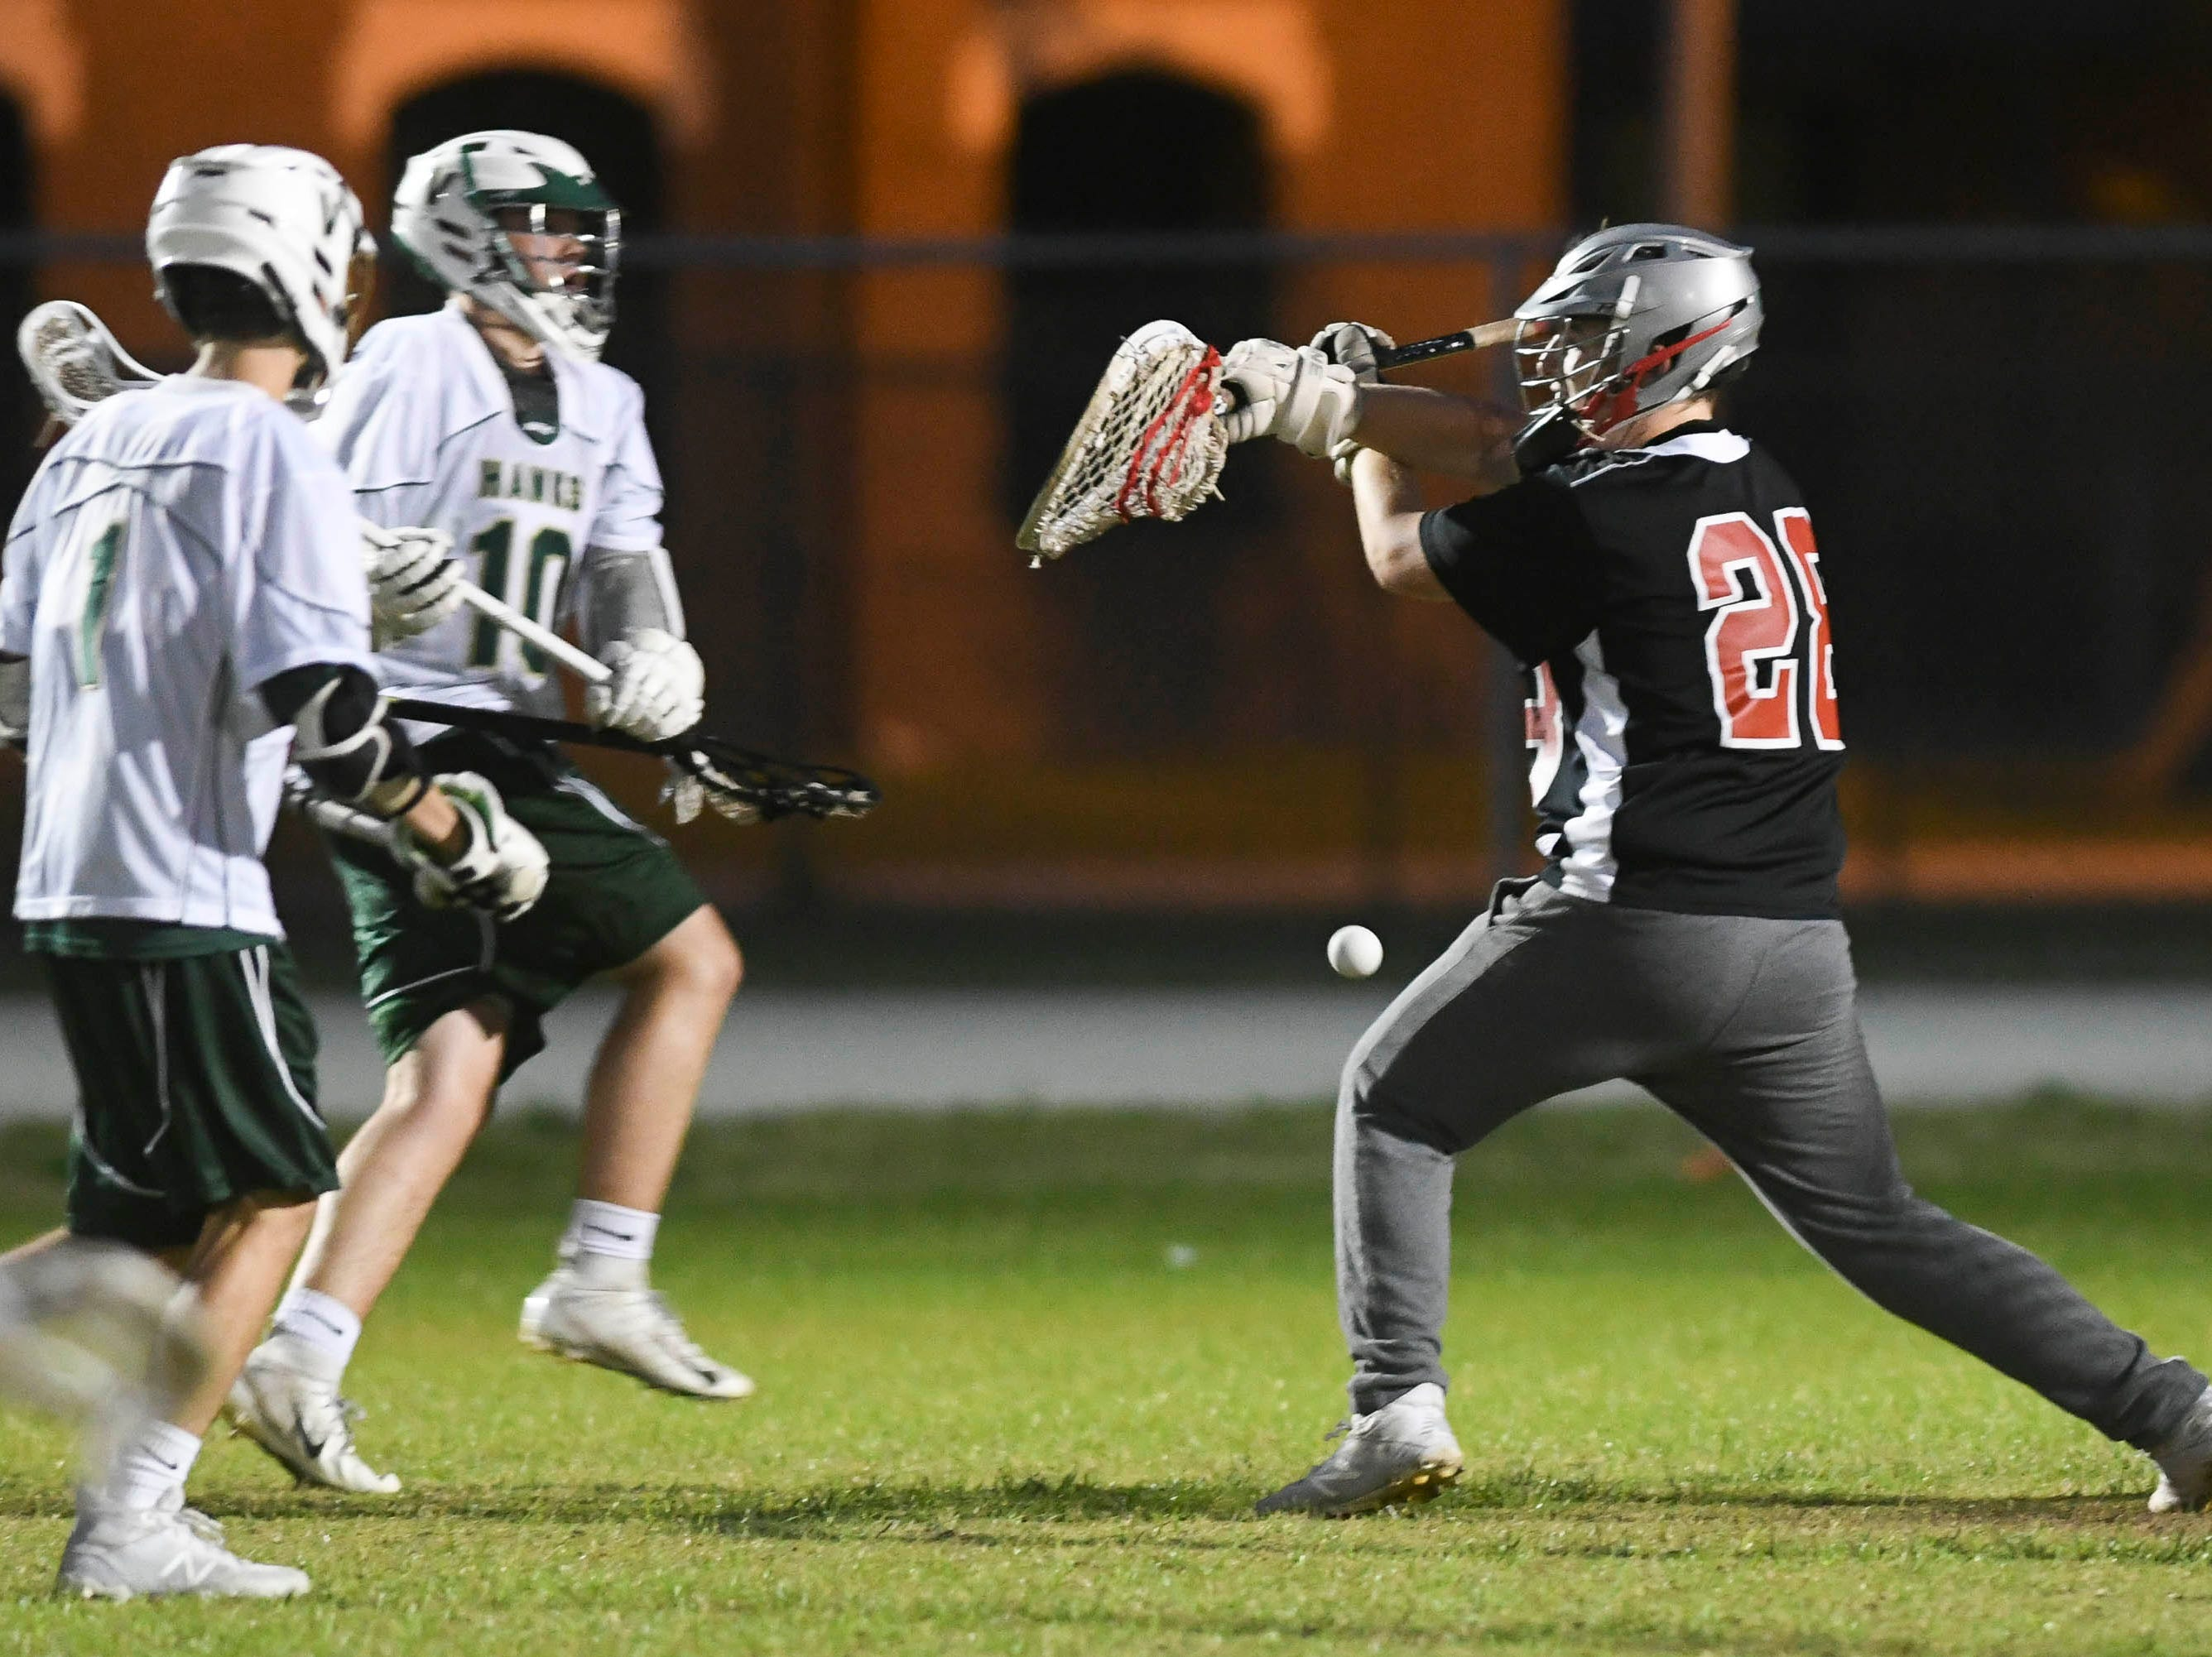 Satellite goalkeeper Jackson Lacy stops a shot during Tuesday's game against Viera.